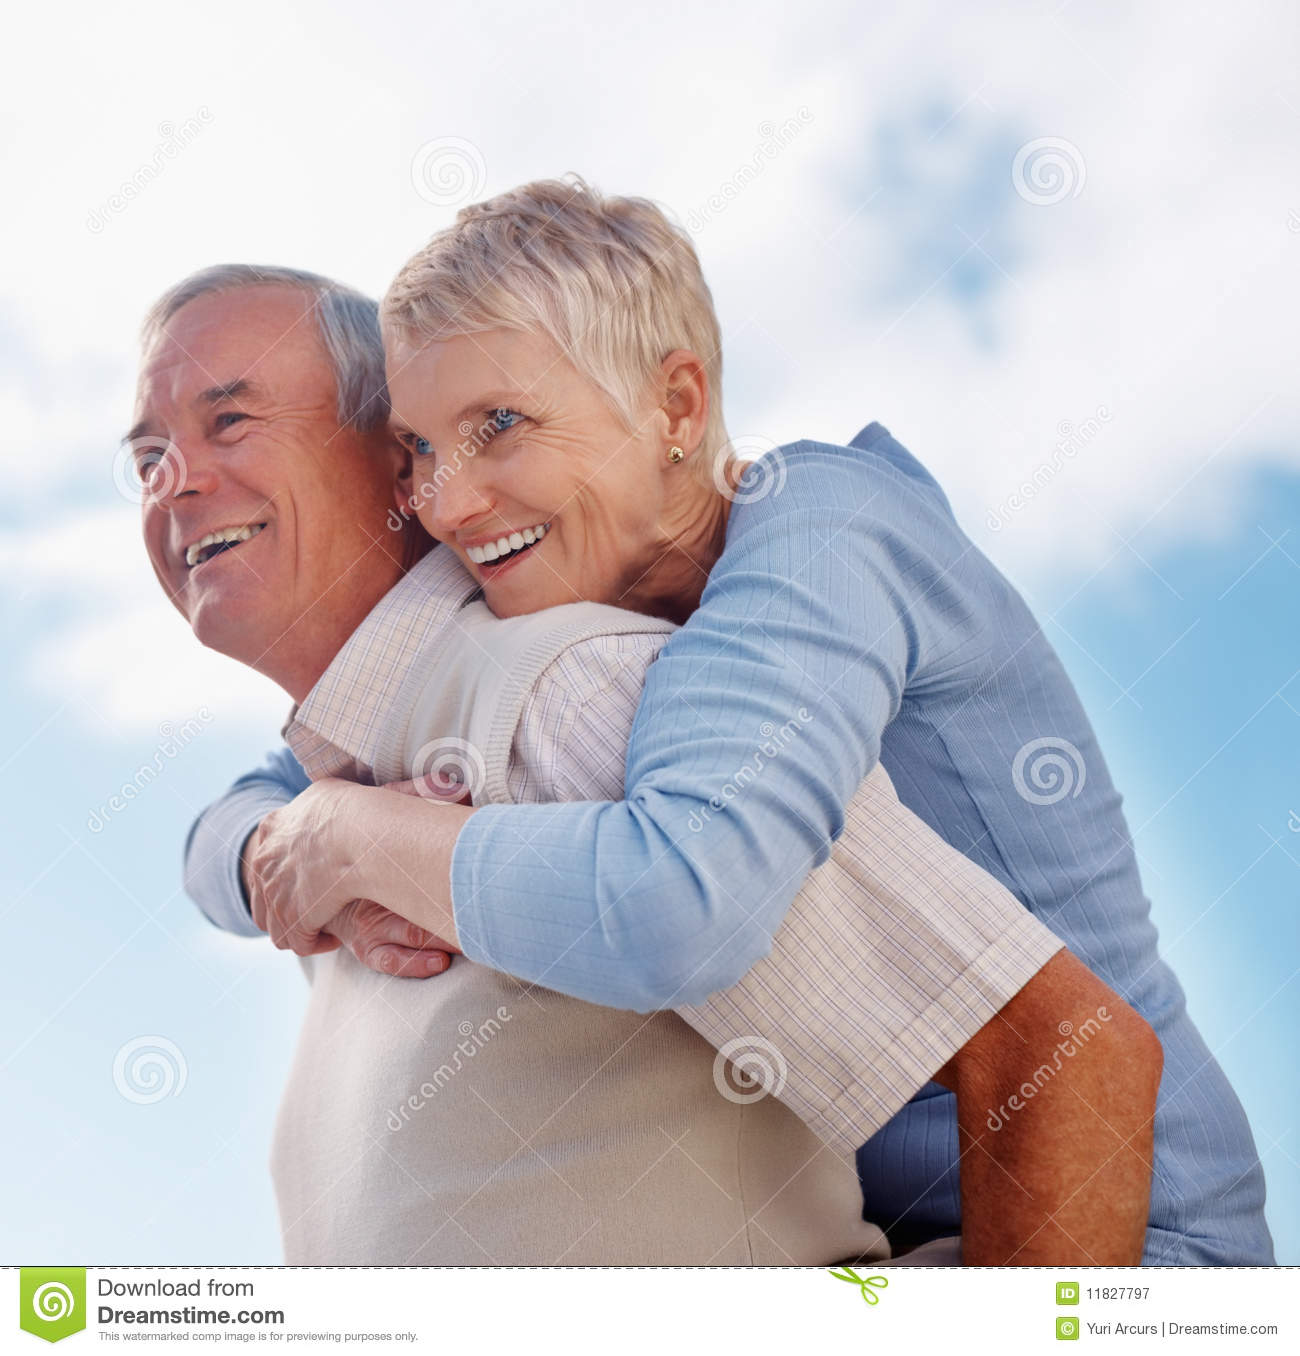 Royalty Free Stock Photography: Older Man Giving Woman